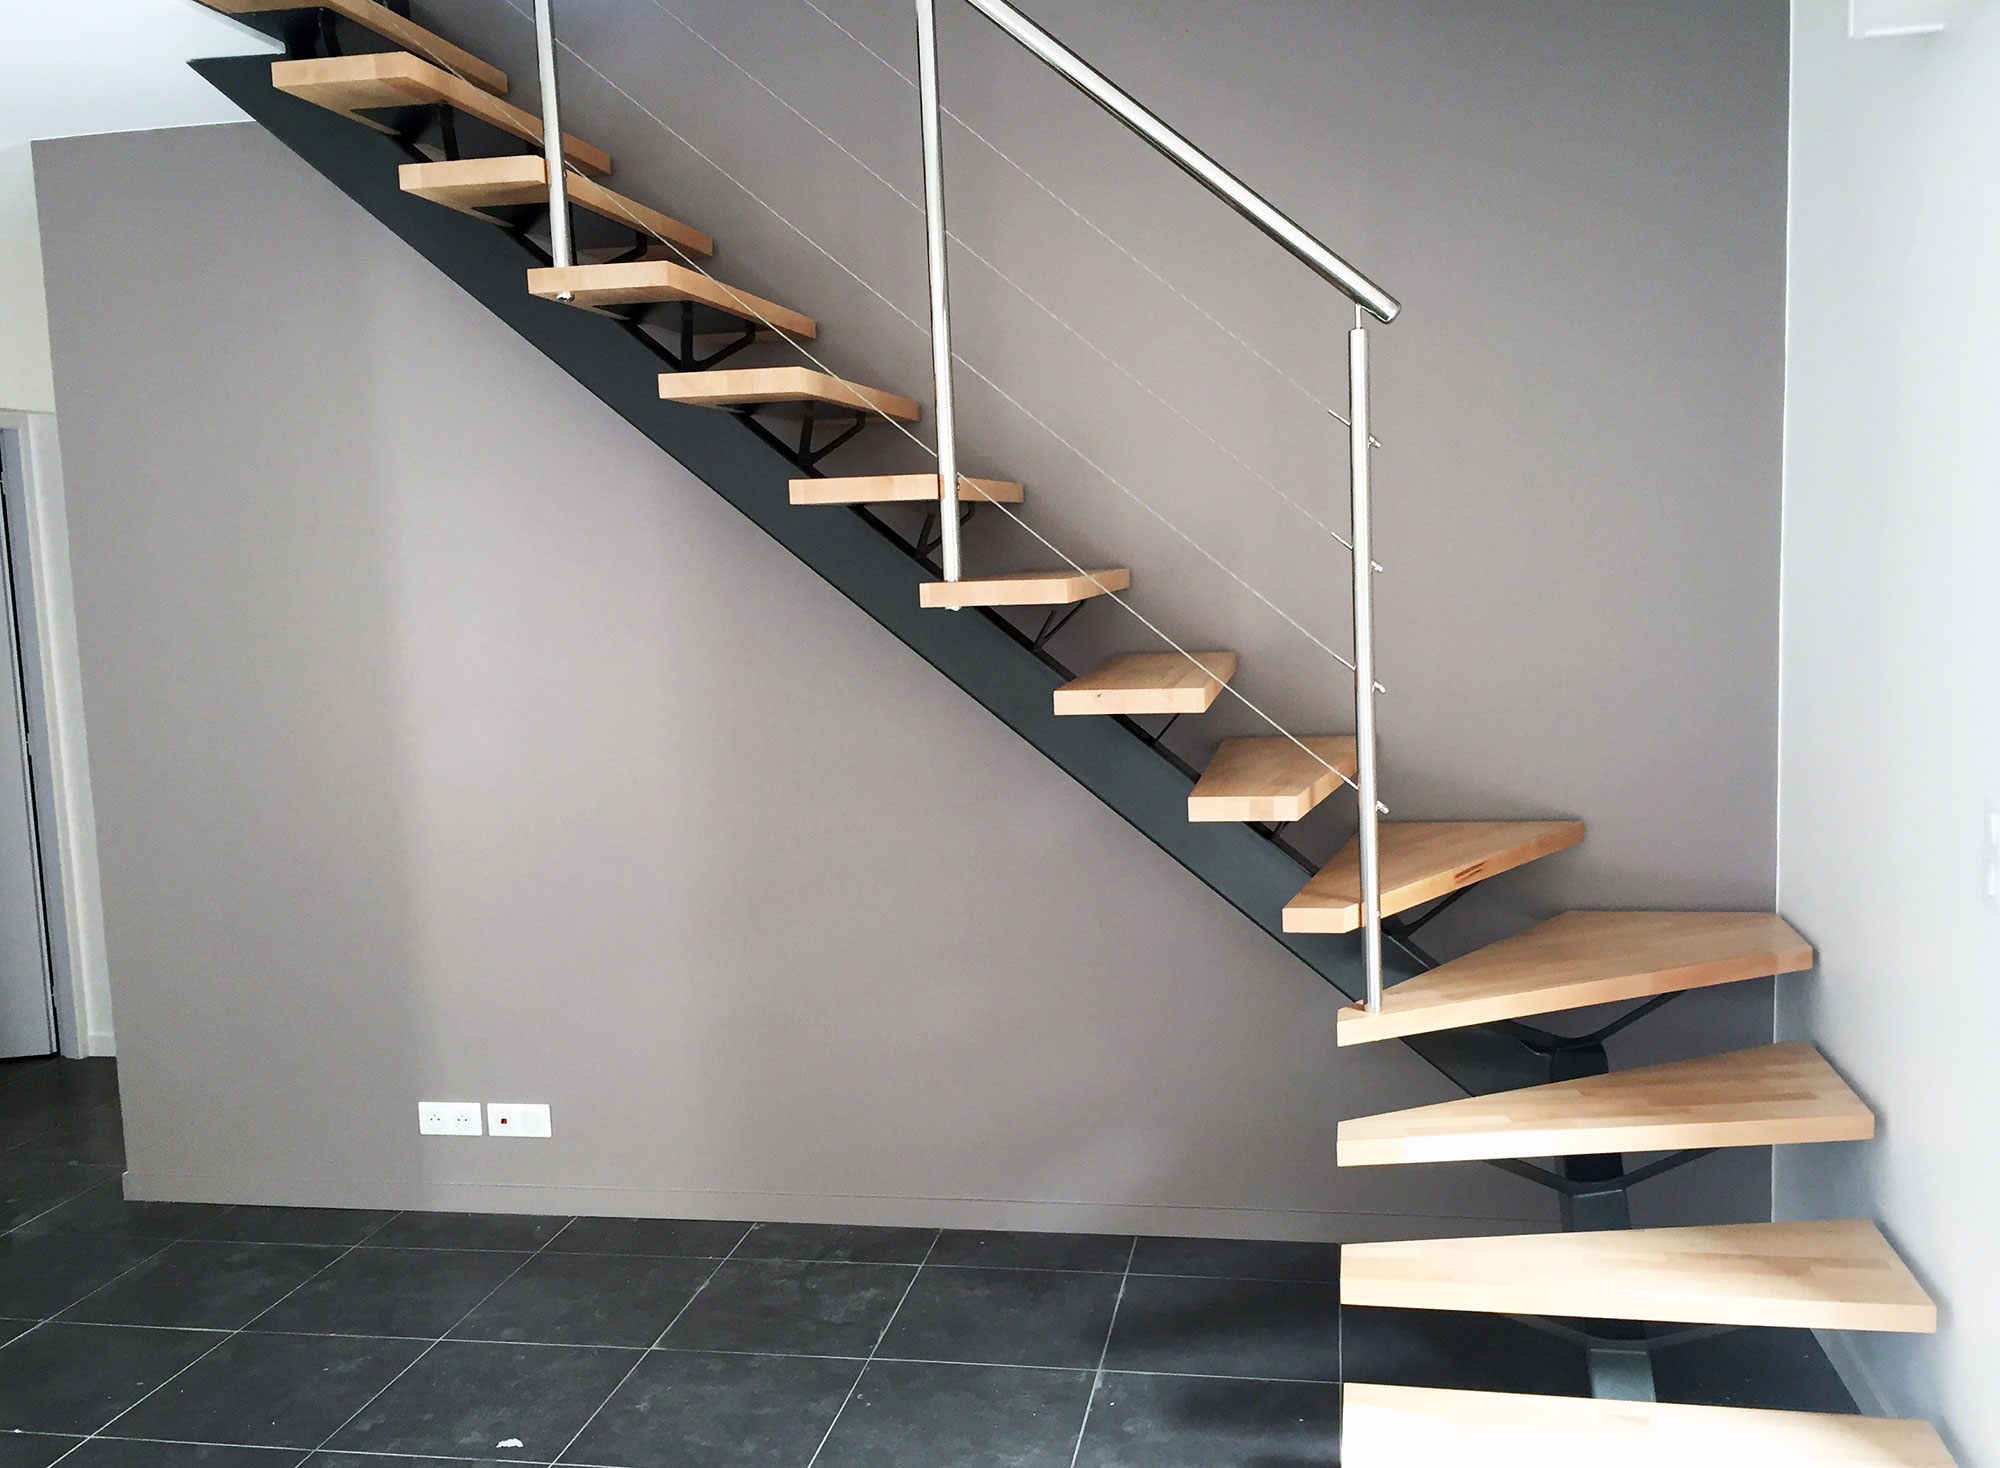 Escalier Metal Ark Escalier Metal Design Simple Escalier Design Metal Bois